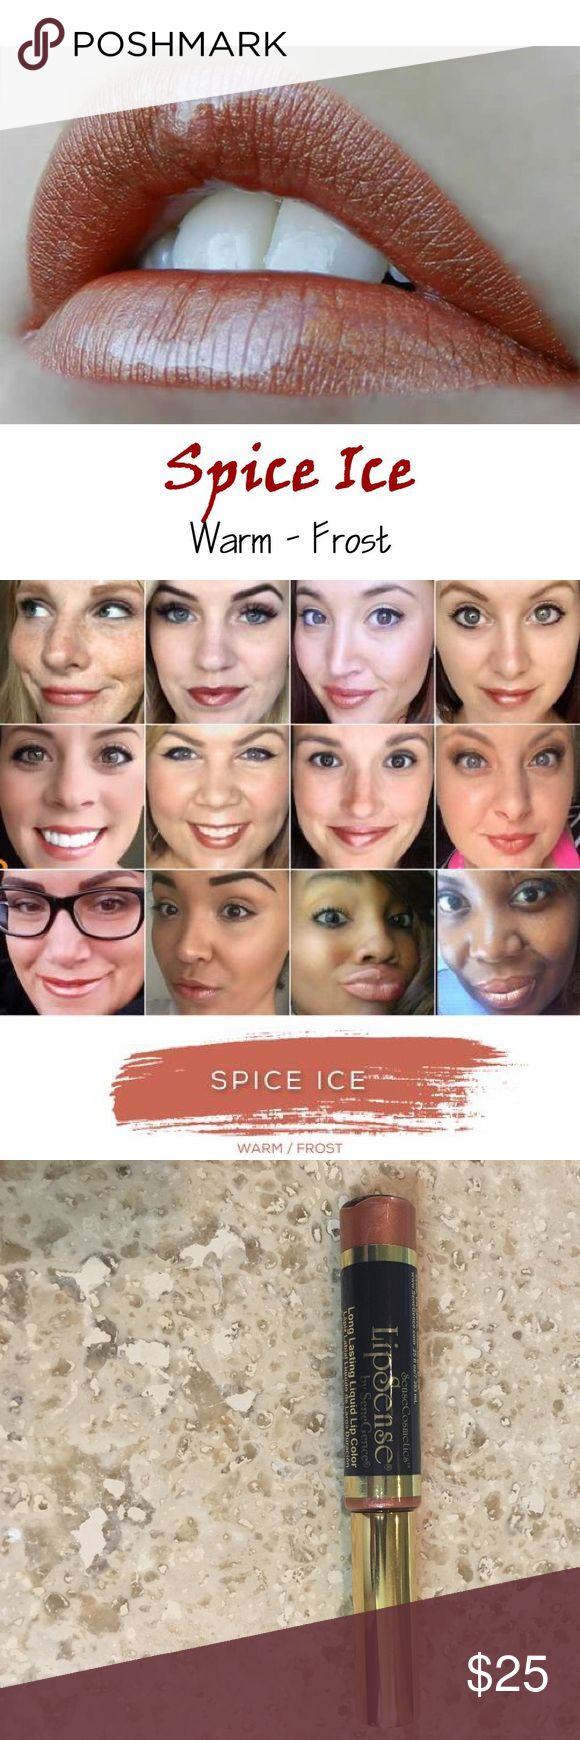 Lipsense Spice Ice 18 Hour Lipcolor Top Seller New Brand new, sealed! Spice Ice is a top selling warm nude color. The premier product of Senegence, LipSense lasts all day – up to 18 hours. It is water-proof, kiss-proof, smudge-proof, and completely budge-proof. LipSense comes in a variety of captivating colors and can be layered to produce your own custom look. Must be used with a Lipsense gloss. Brand new, sealed! COMMENT BELOW WITH YOUR EMAIL TO GET DISCOUNT INFORMATION, I always sell in…